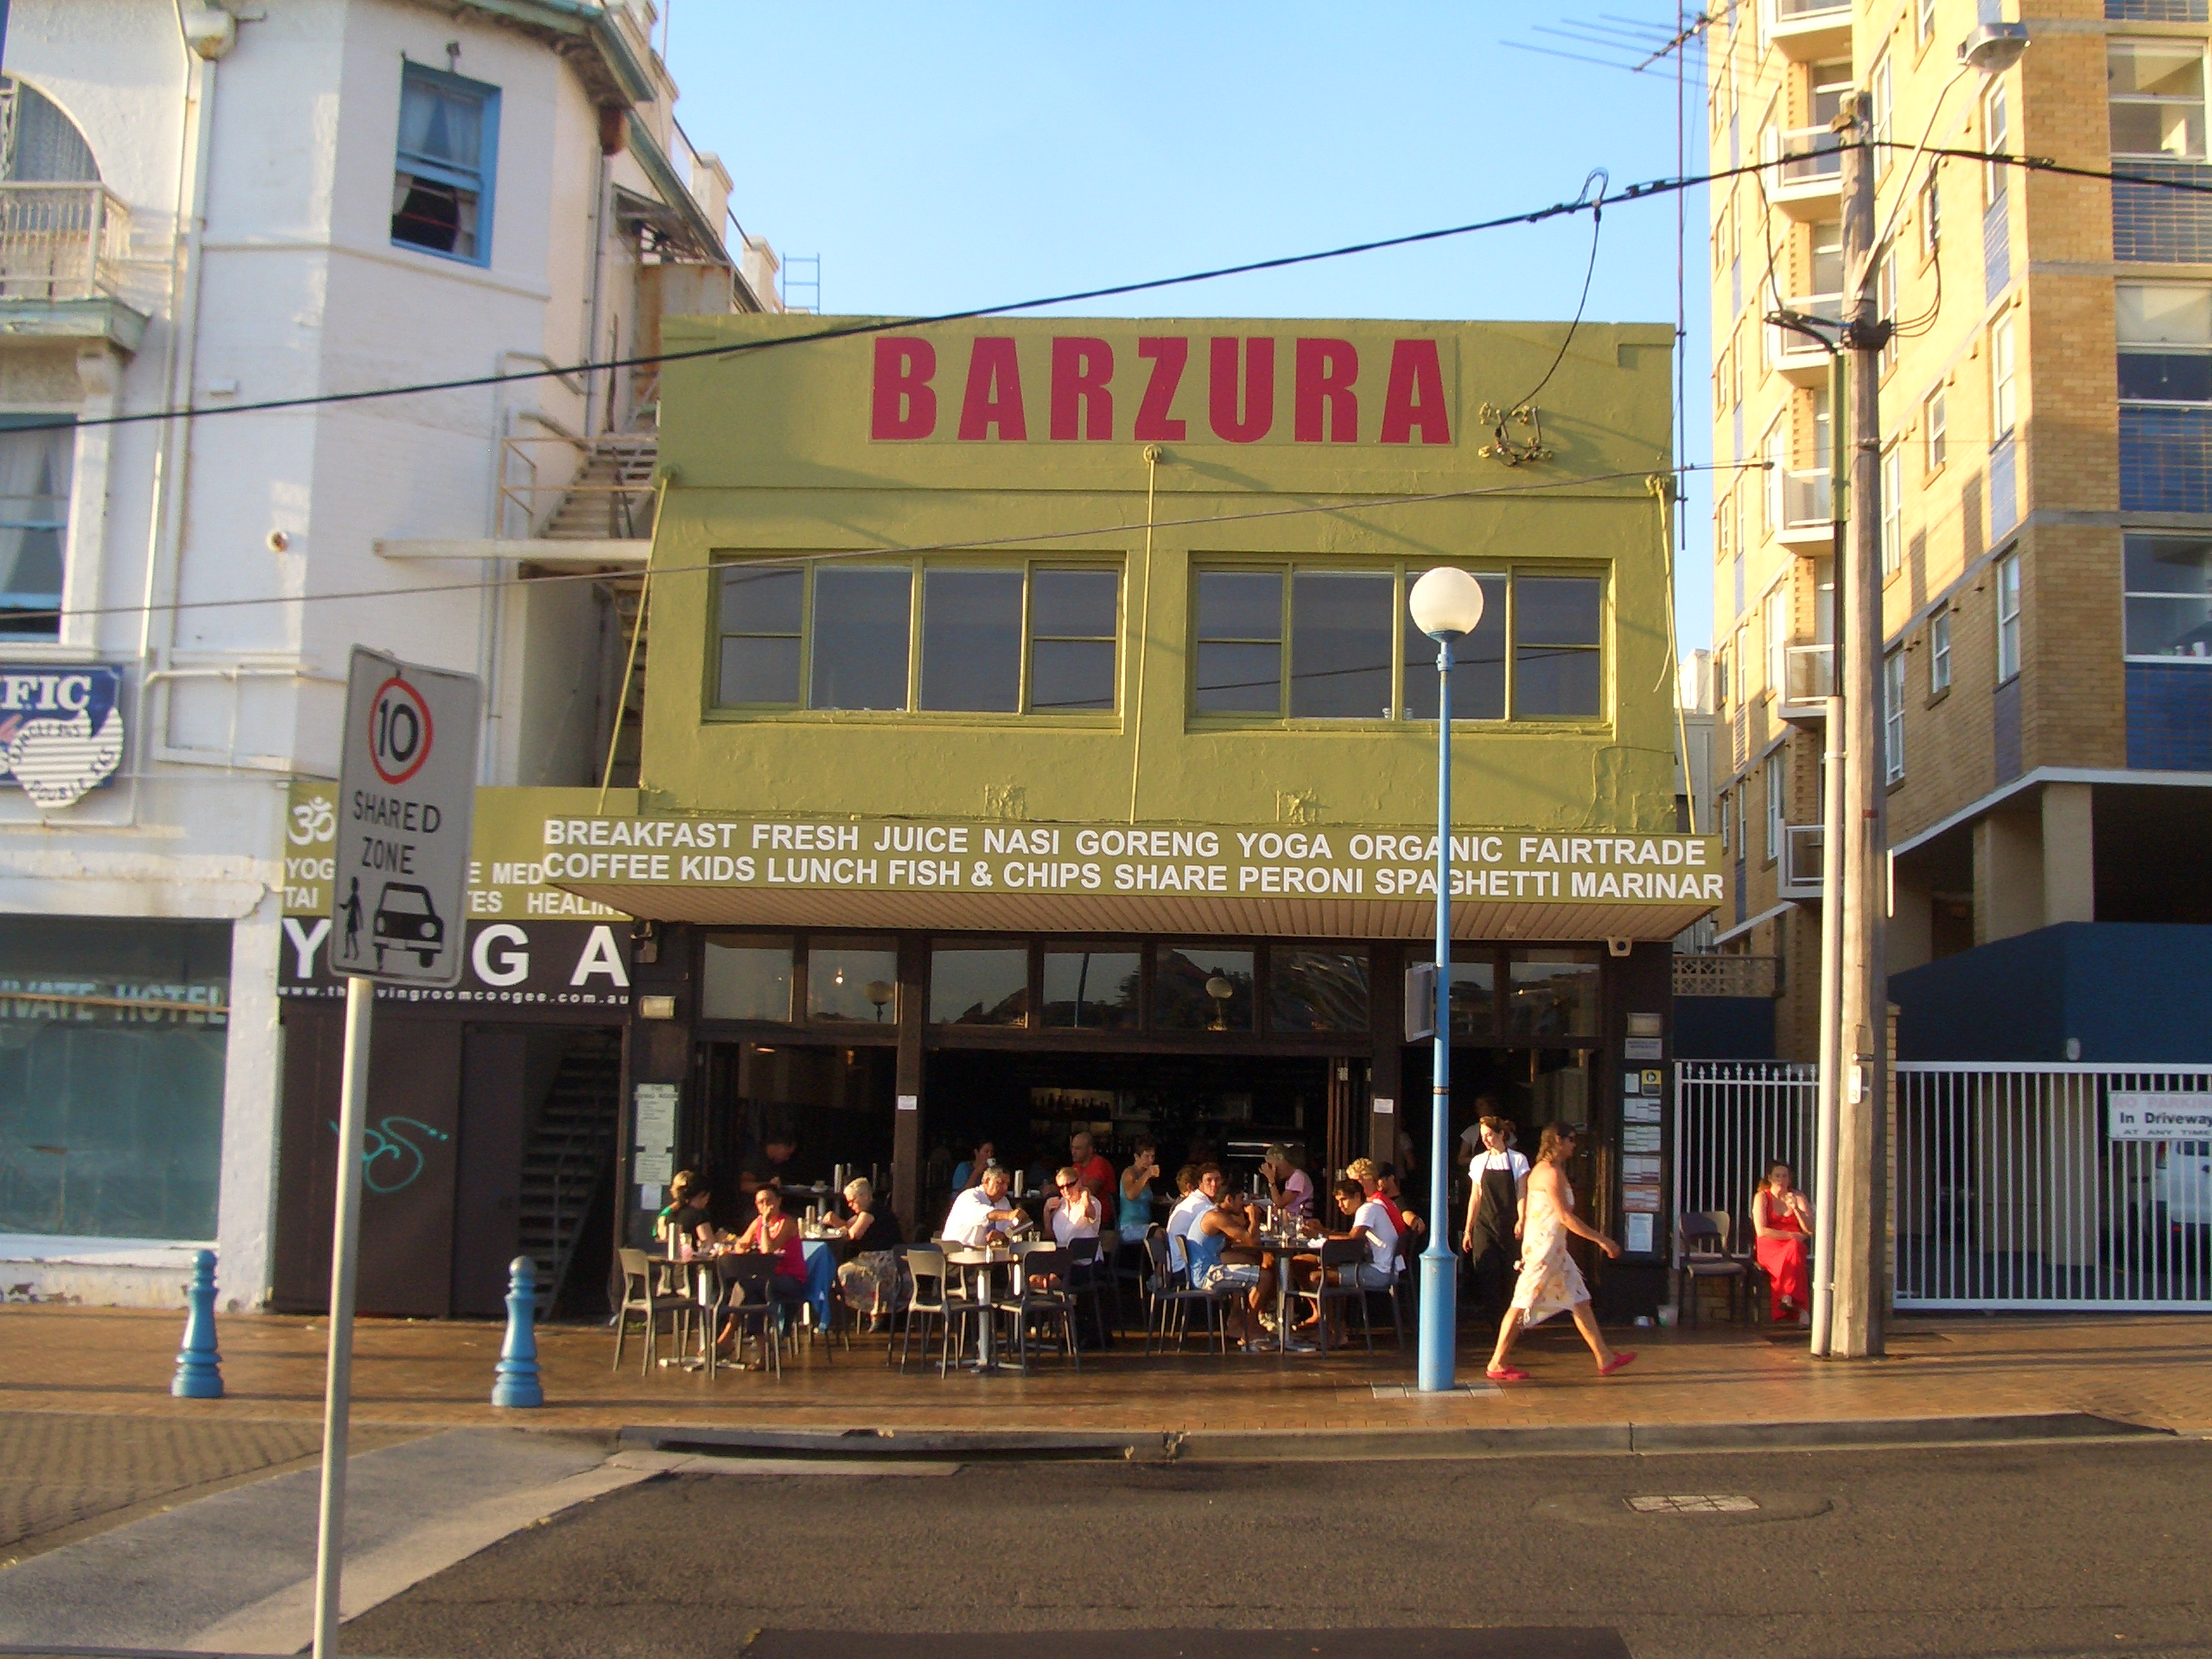 Things To Do in Portuguese, Restaurants in Portuguese